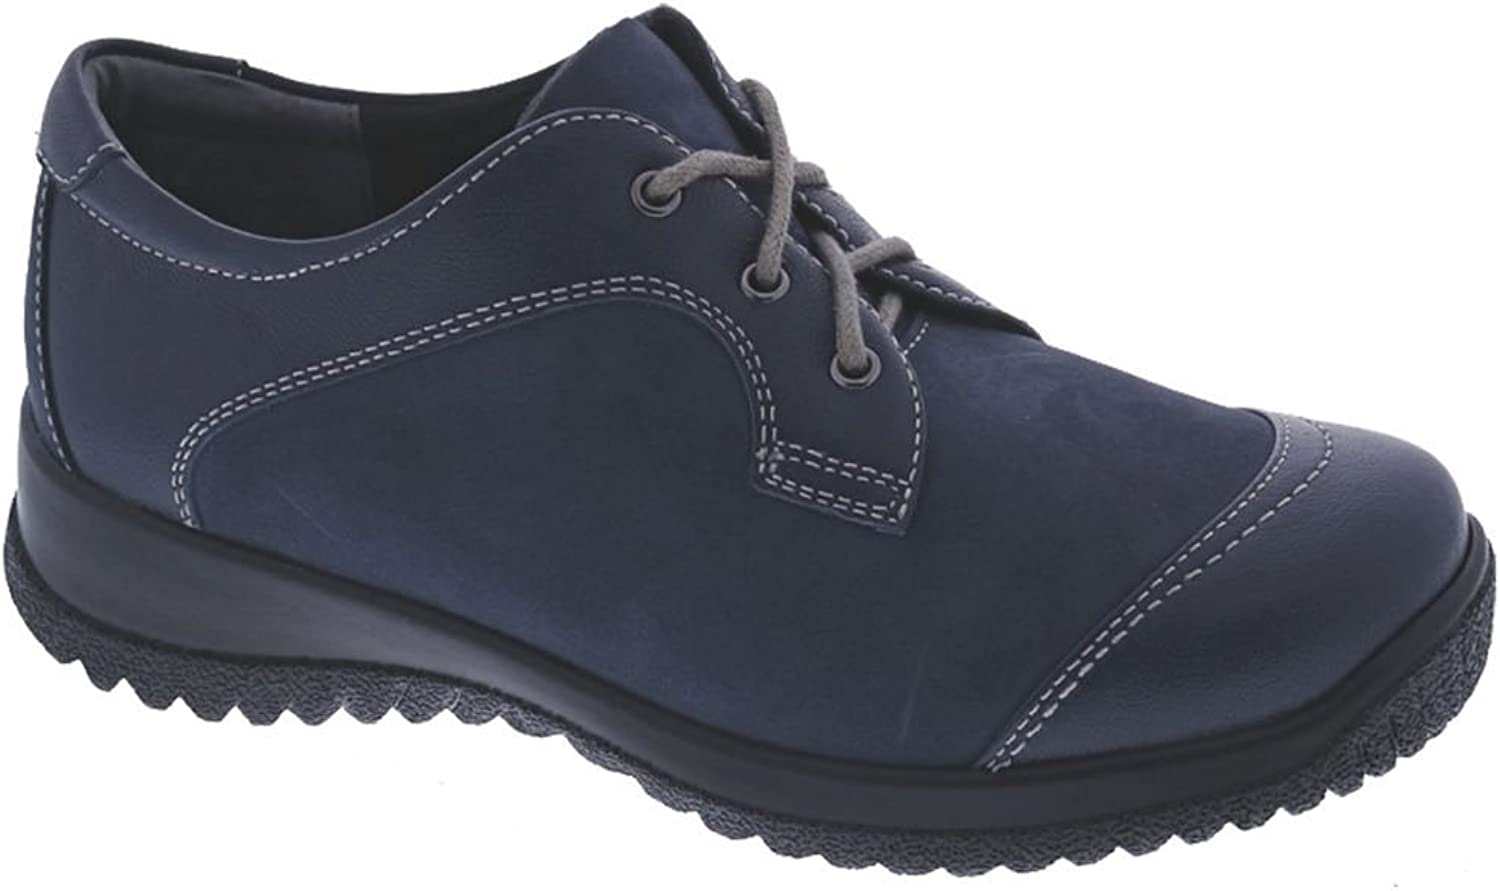 Drew shoes Women's Hope Therapeutic Leather Fashion Oxfords